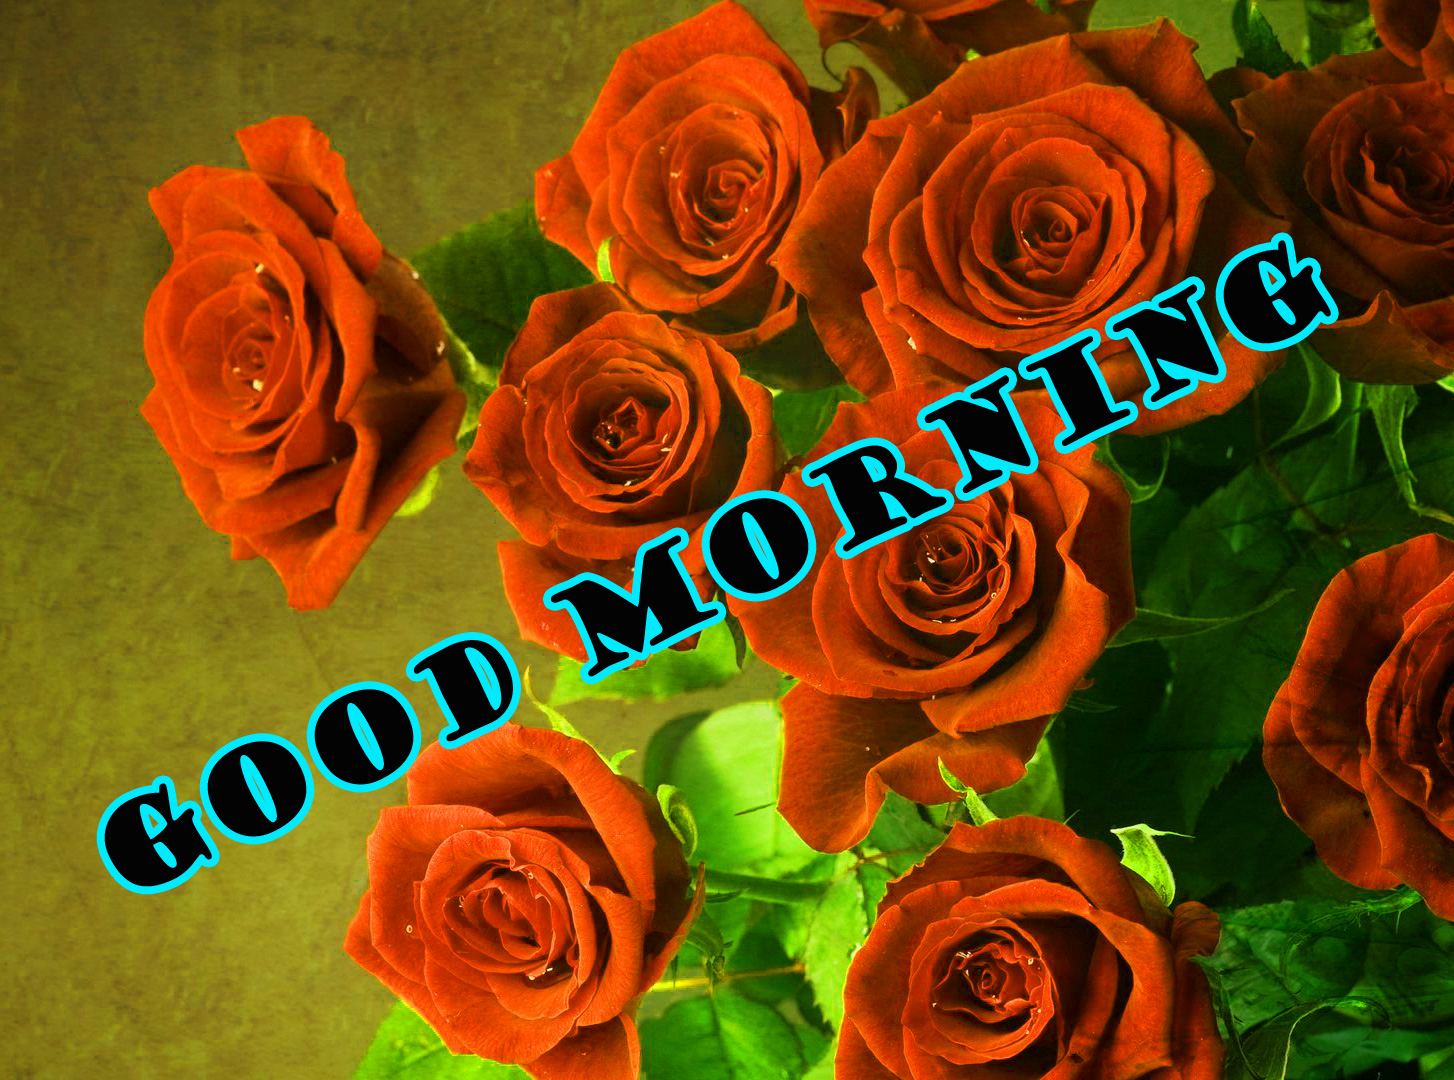 Good Morning Red Rose Pictures Images Photo Free Download